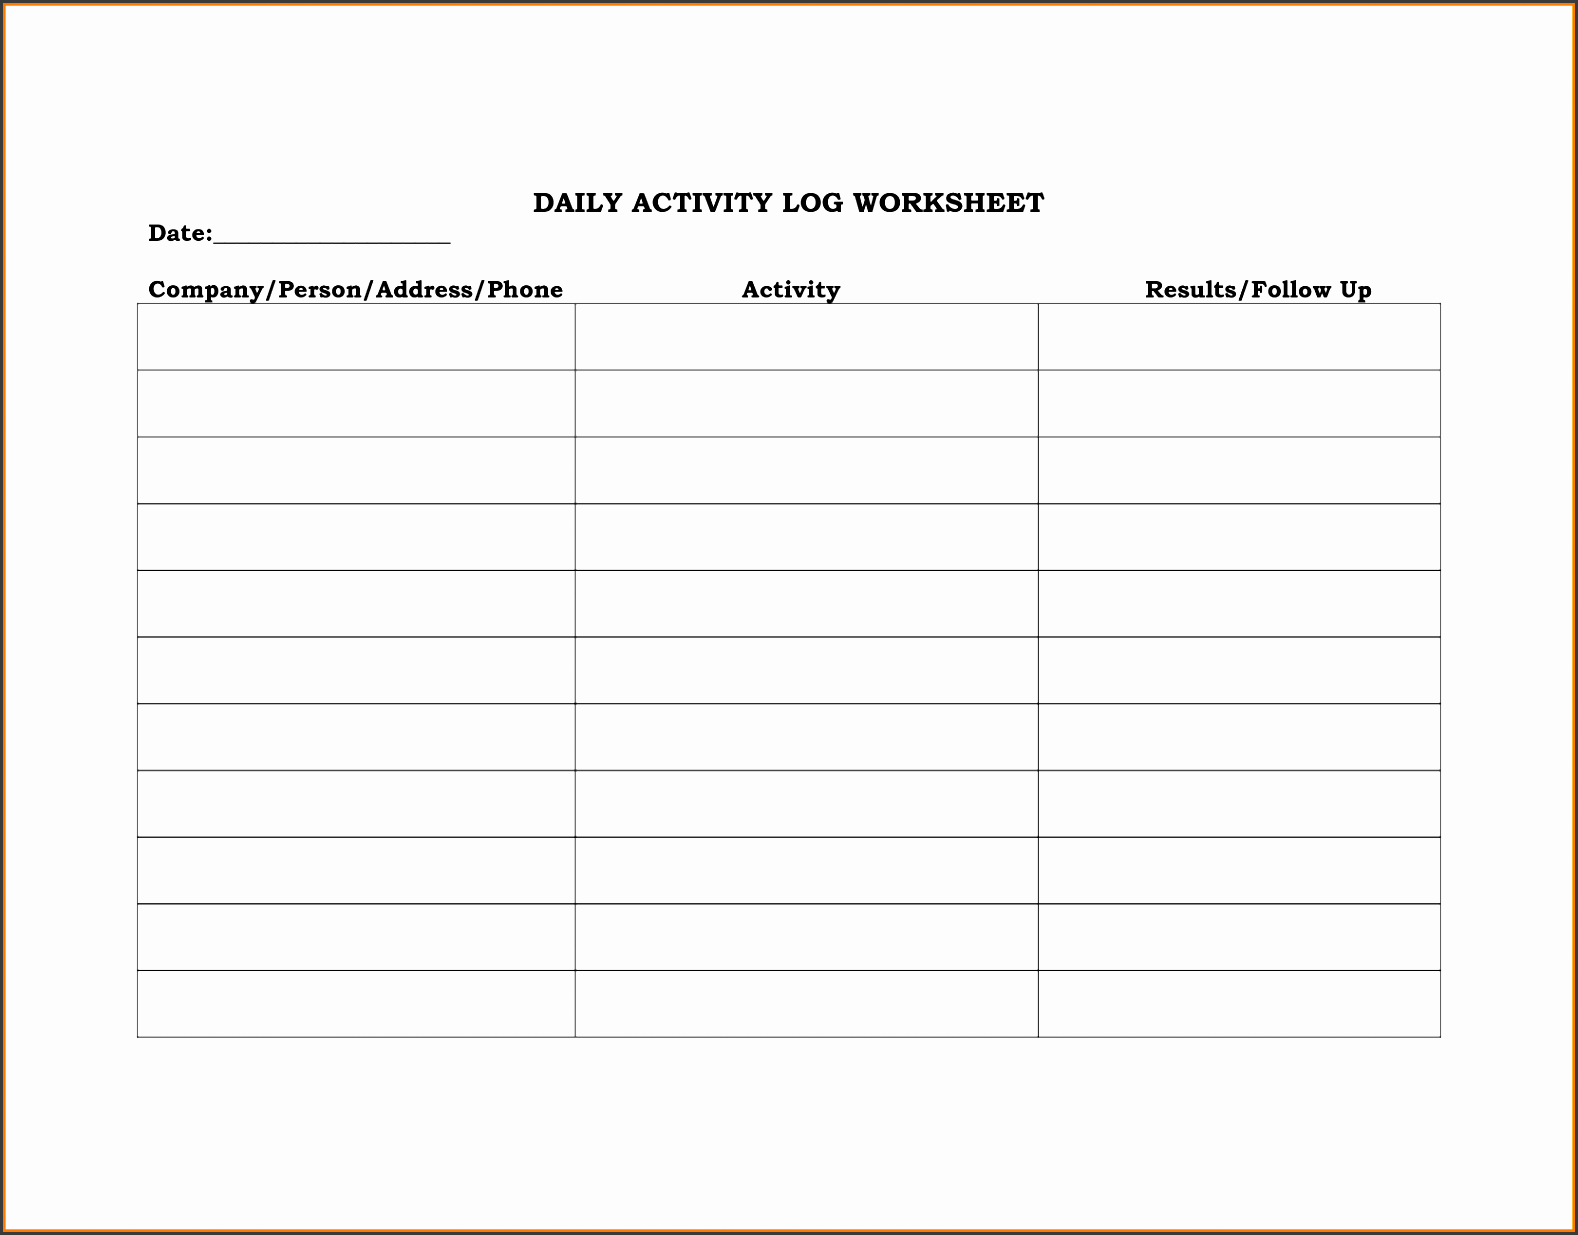 8 Daily Activity Log Template For Companies